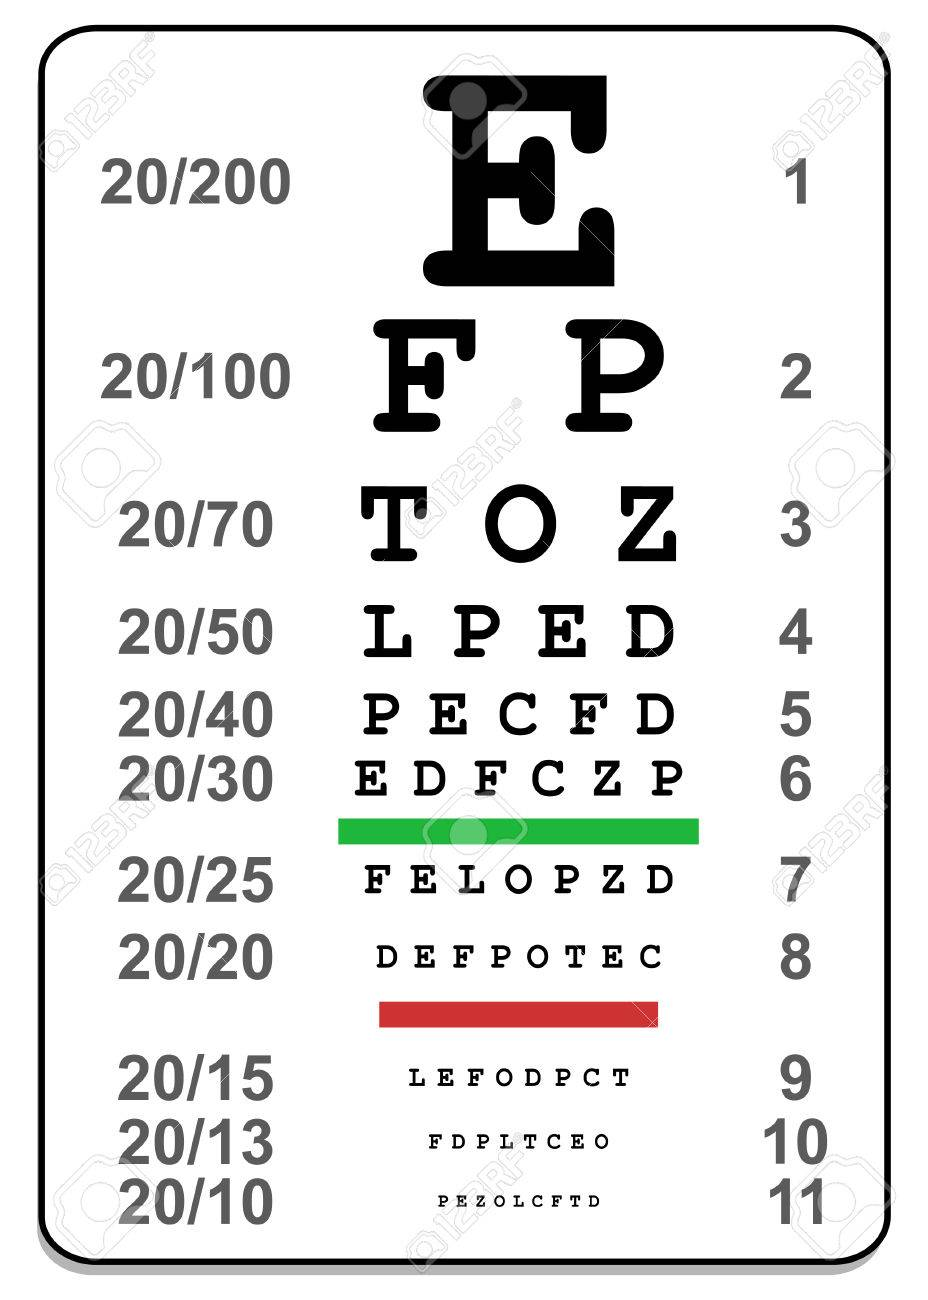 Sign For Eye Test Use By Doctors Royalty Free Cliparts, Vectors ...